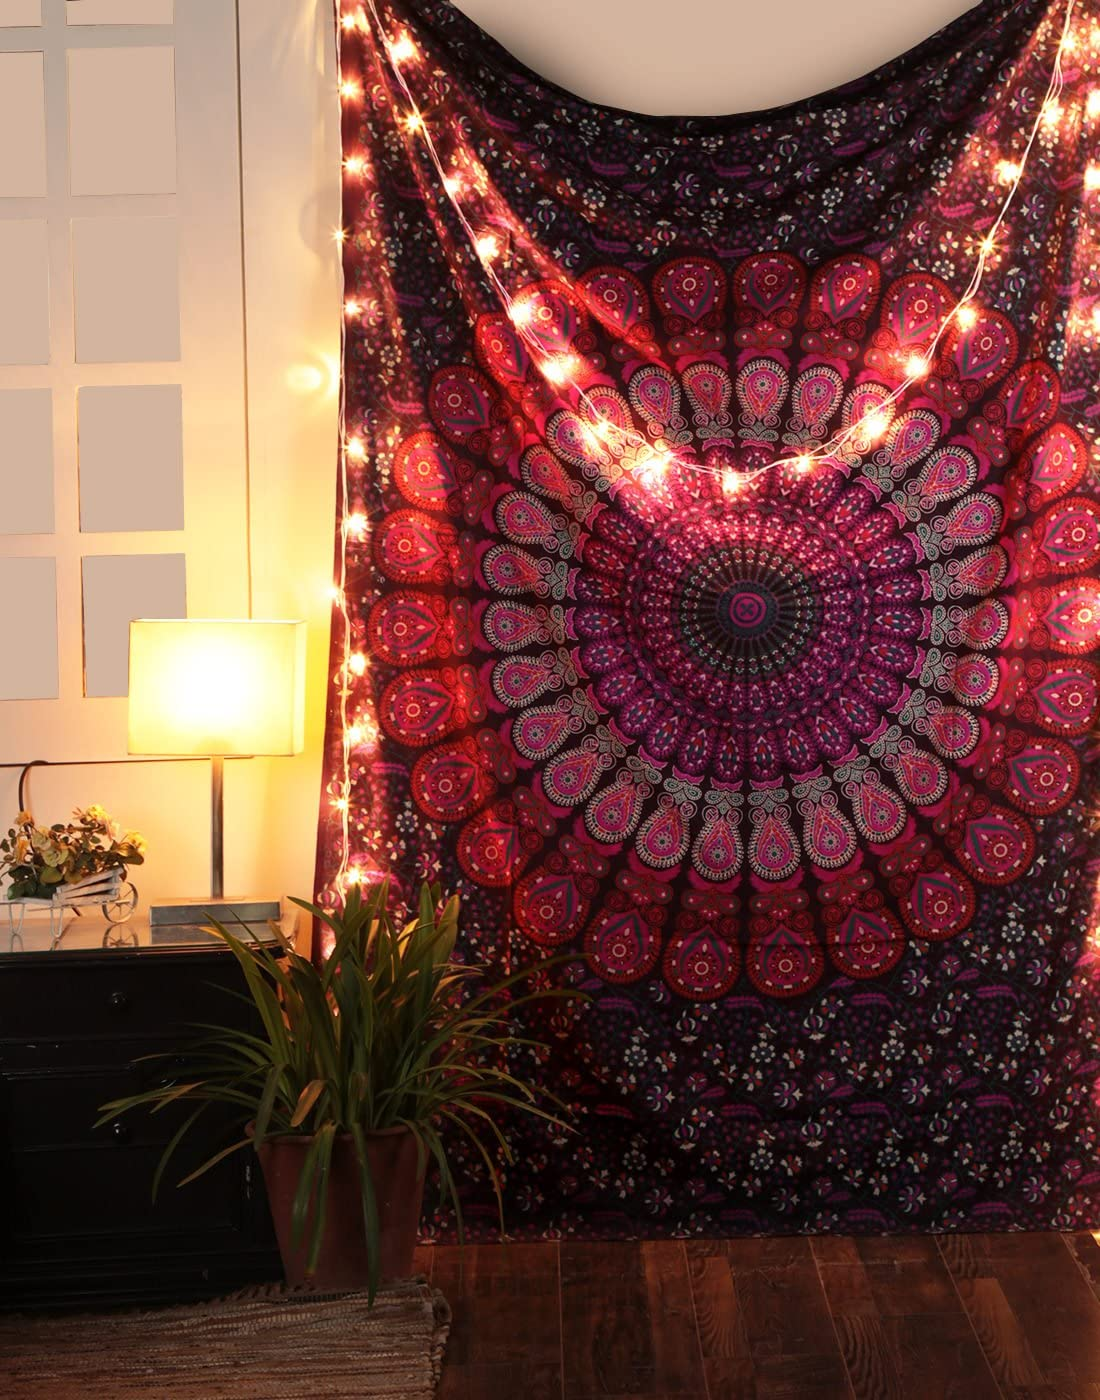 Peacock Mandala Tapestry - Hippie Wall Hanging Decorative Trippy Tapestries Bohemian Boho Bedding Indian Handmade Pure Cotton Bed Spread Sheet (Poster (50 x 60 in), Pink)